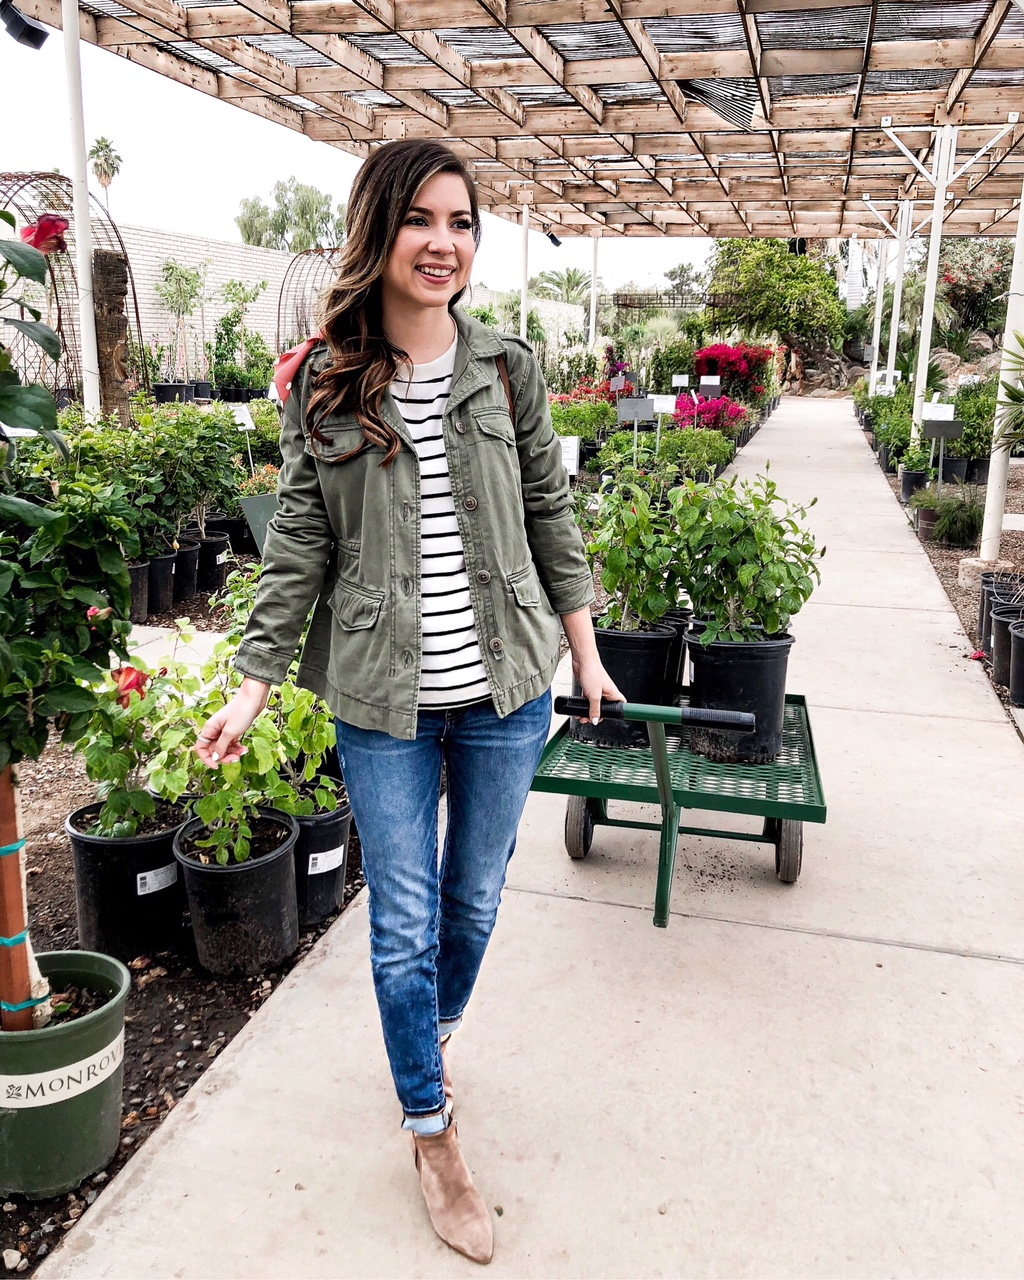 casual olive green jacket outfits for women to wear with jeans